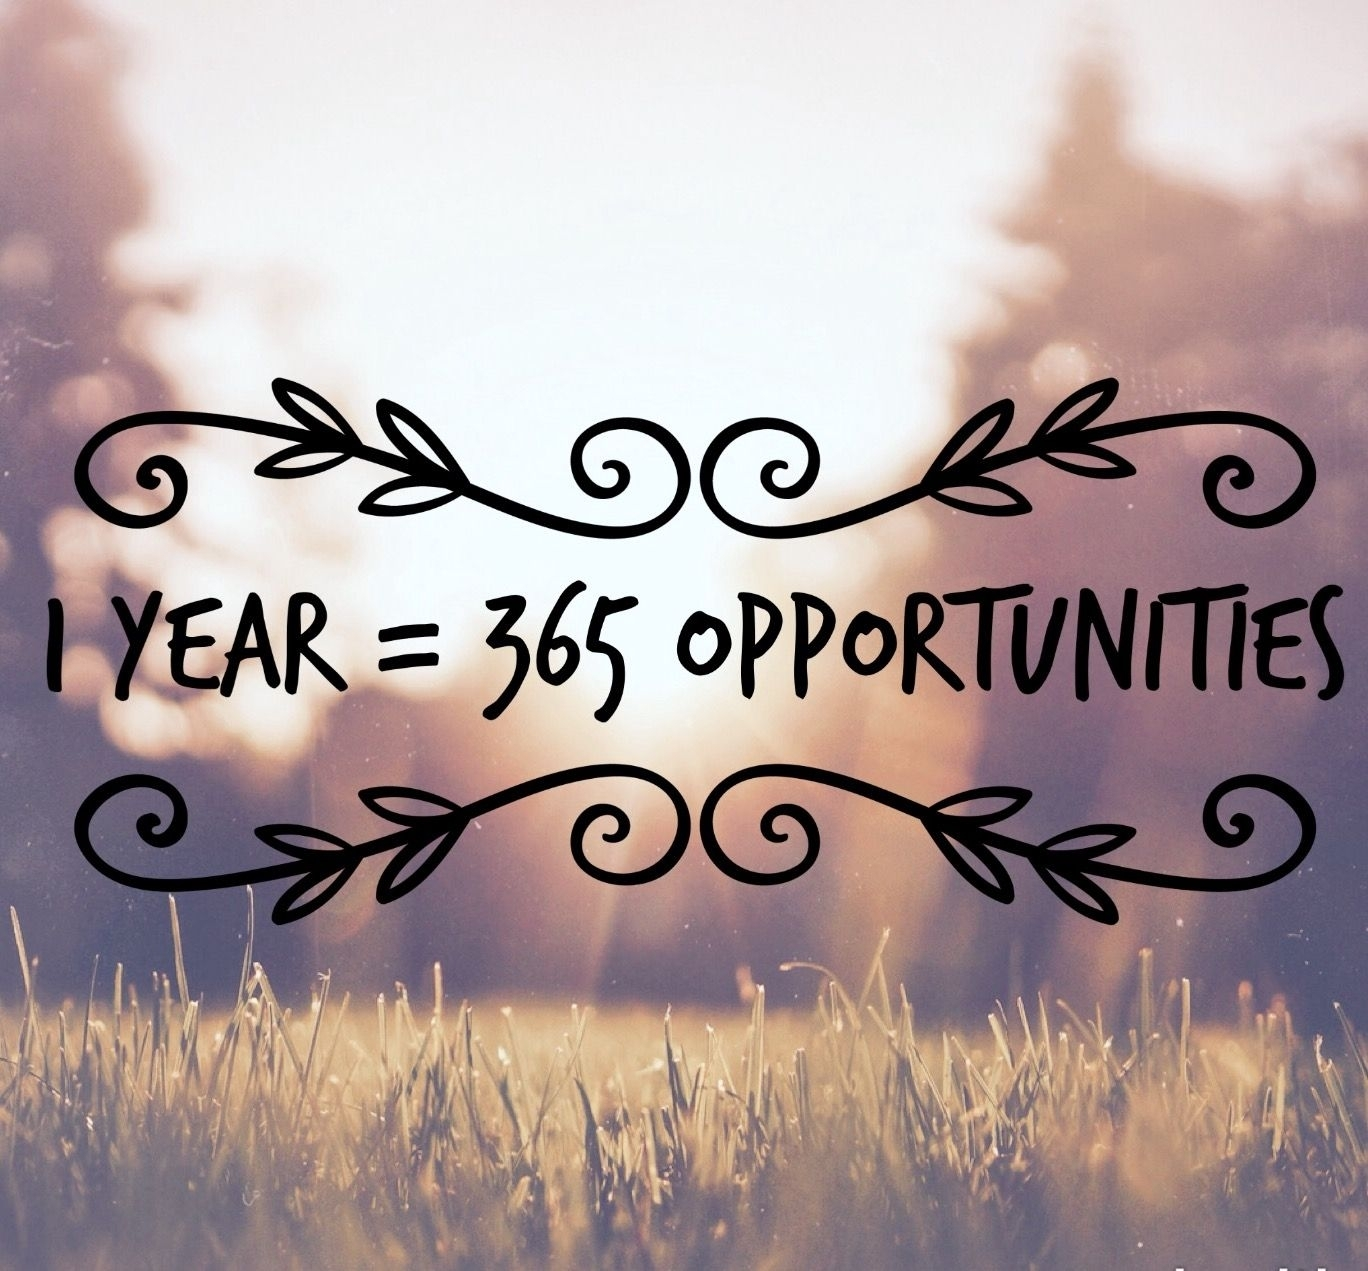 1 Year = 365 Opportunities